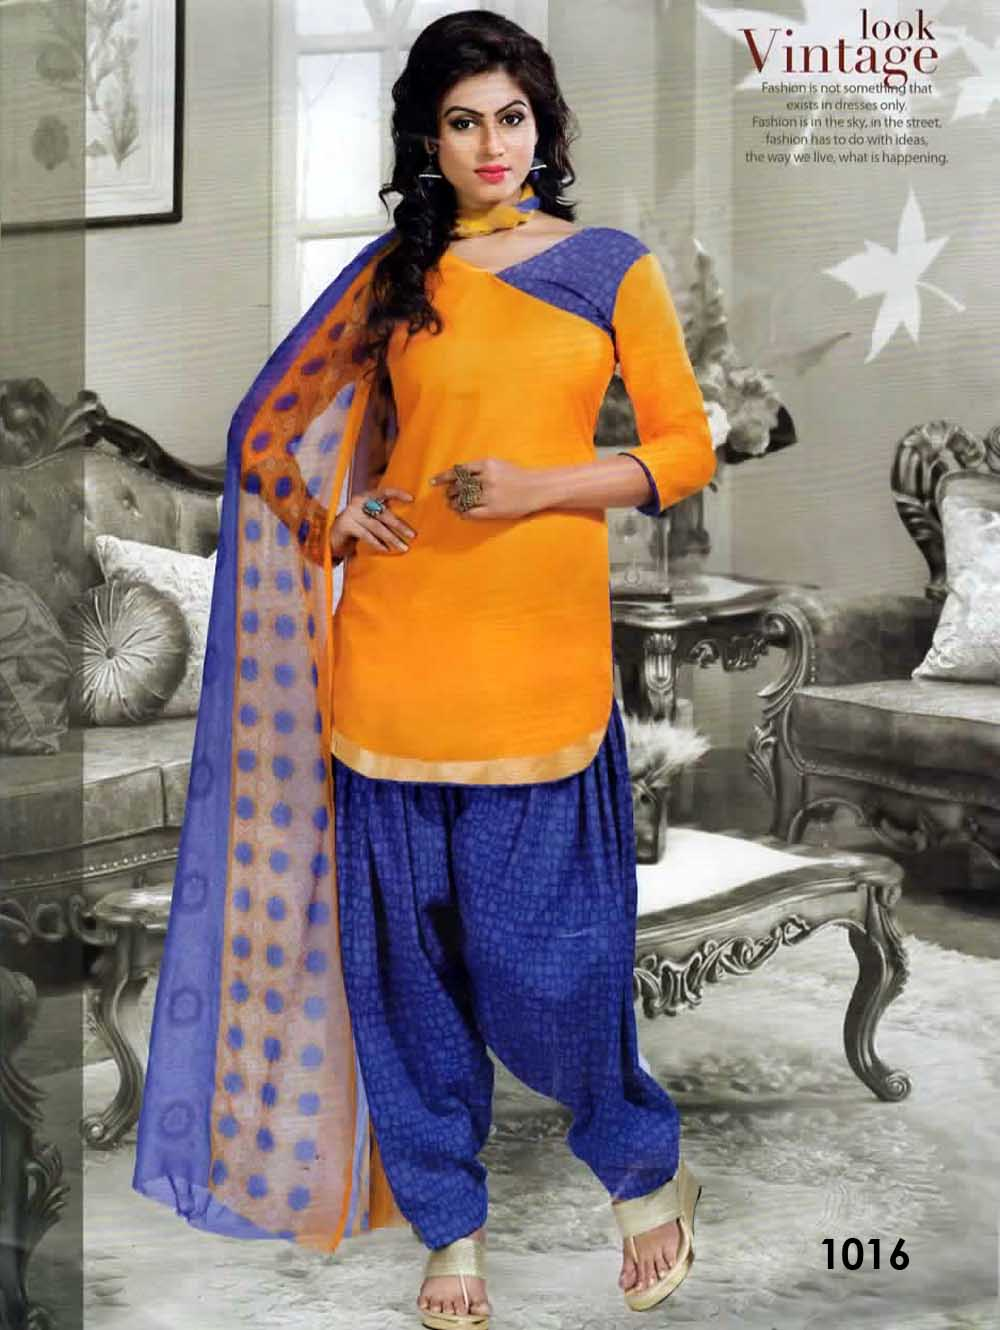 Mango Yellow Coloured Mix Cotton Patiala Suit